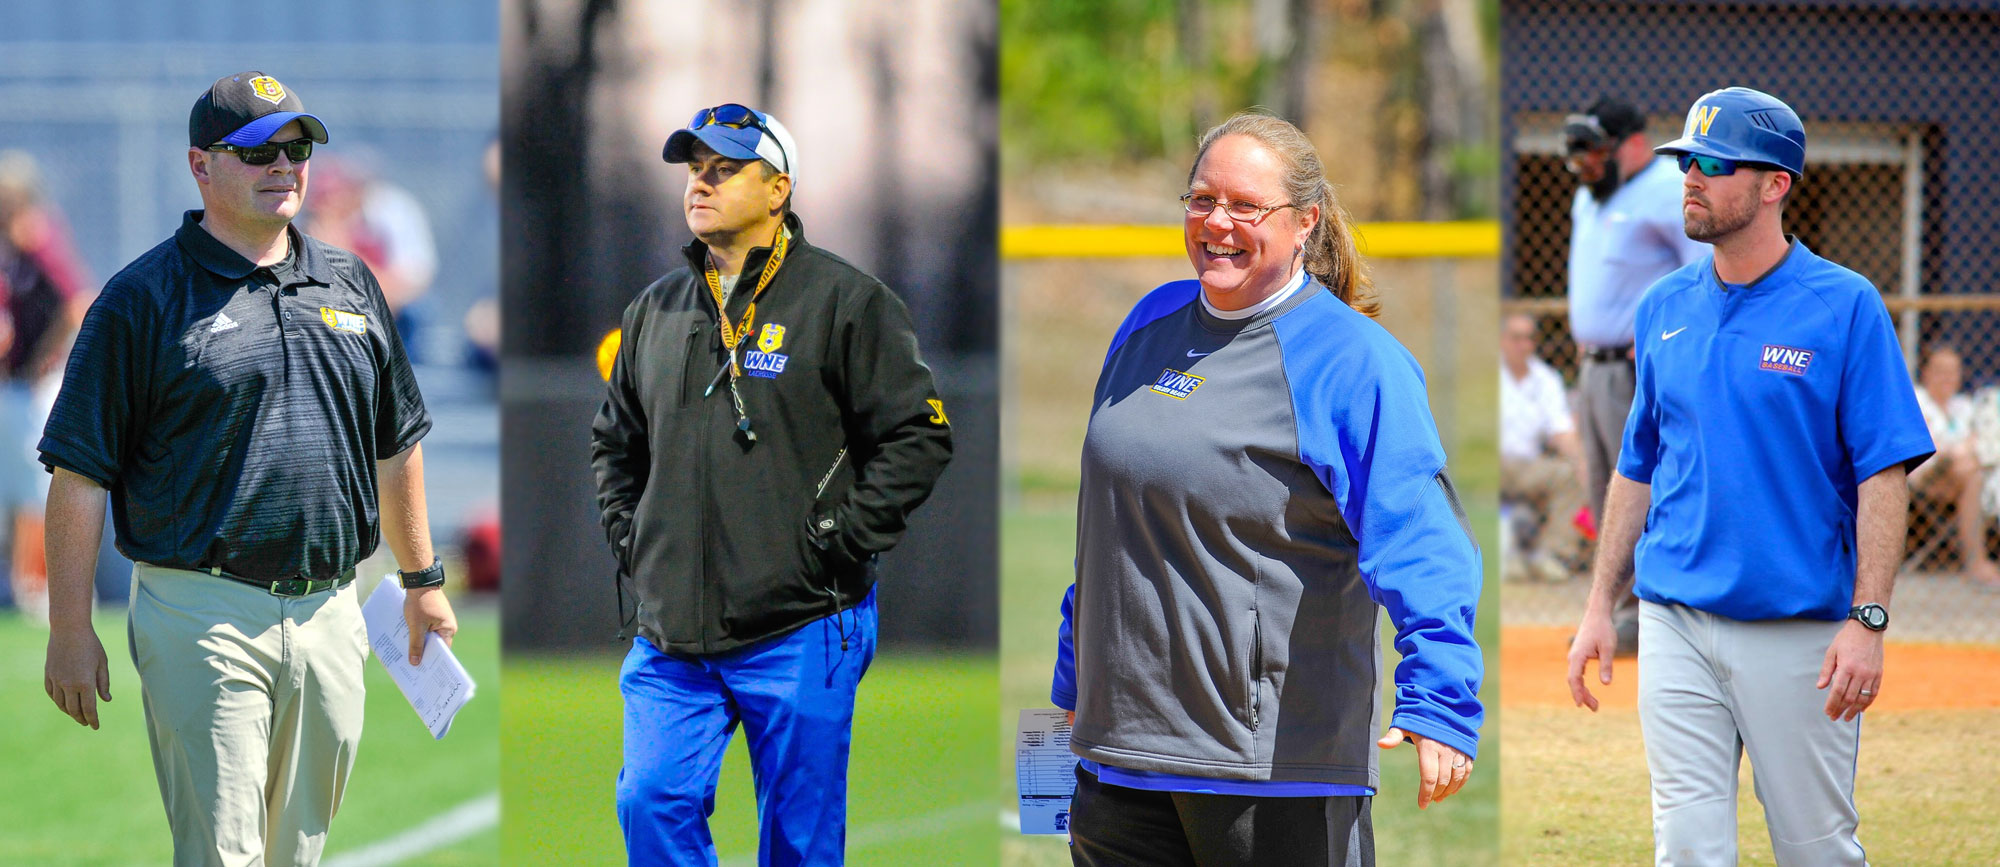 Catching Up with Western New England's Four Coach of the Year Award Winners